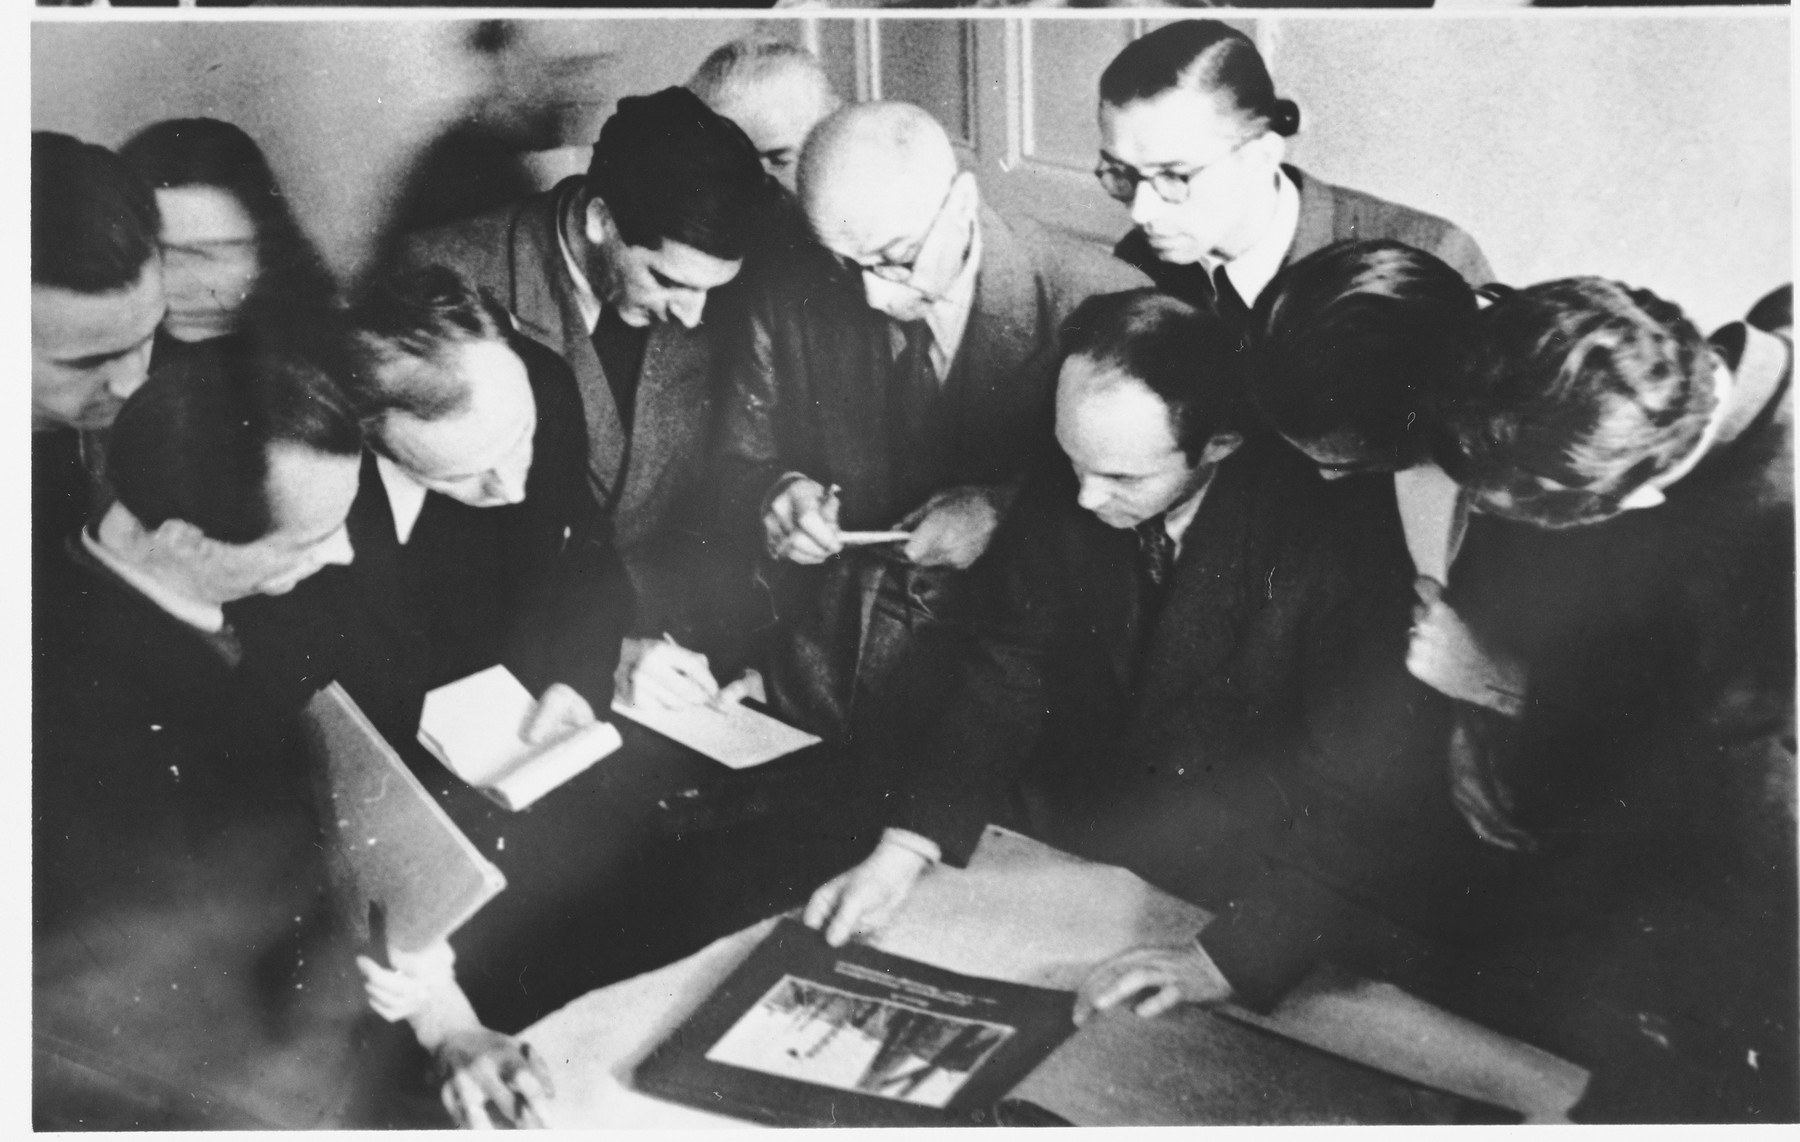 Court reporters examine a piece of evidence at the Sachsenhausen concentration camp war crimes trial in Berlin.